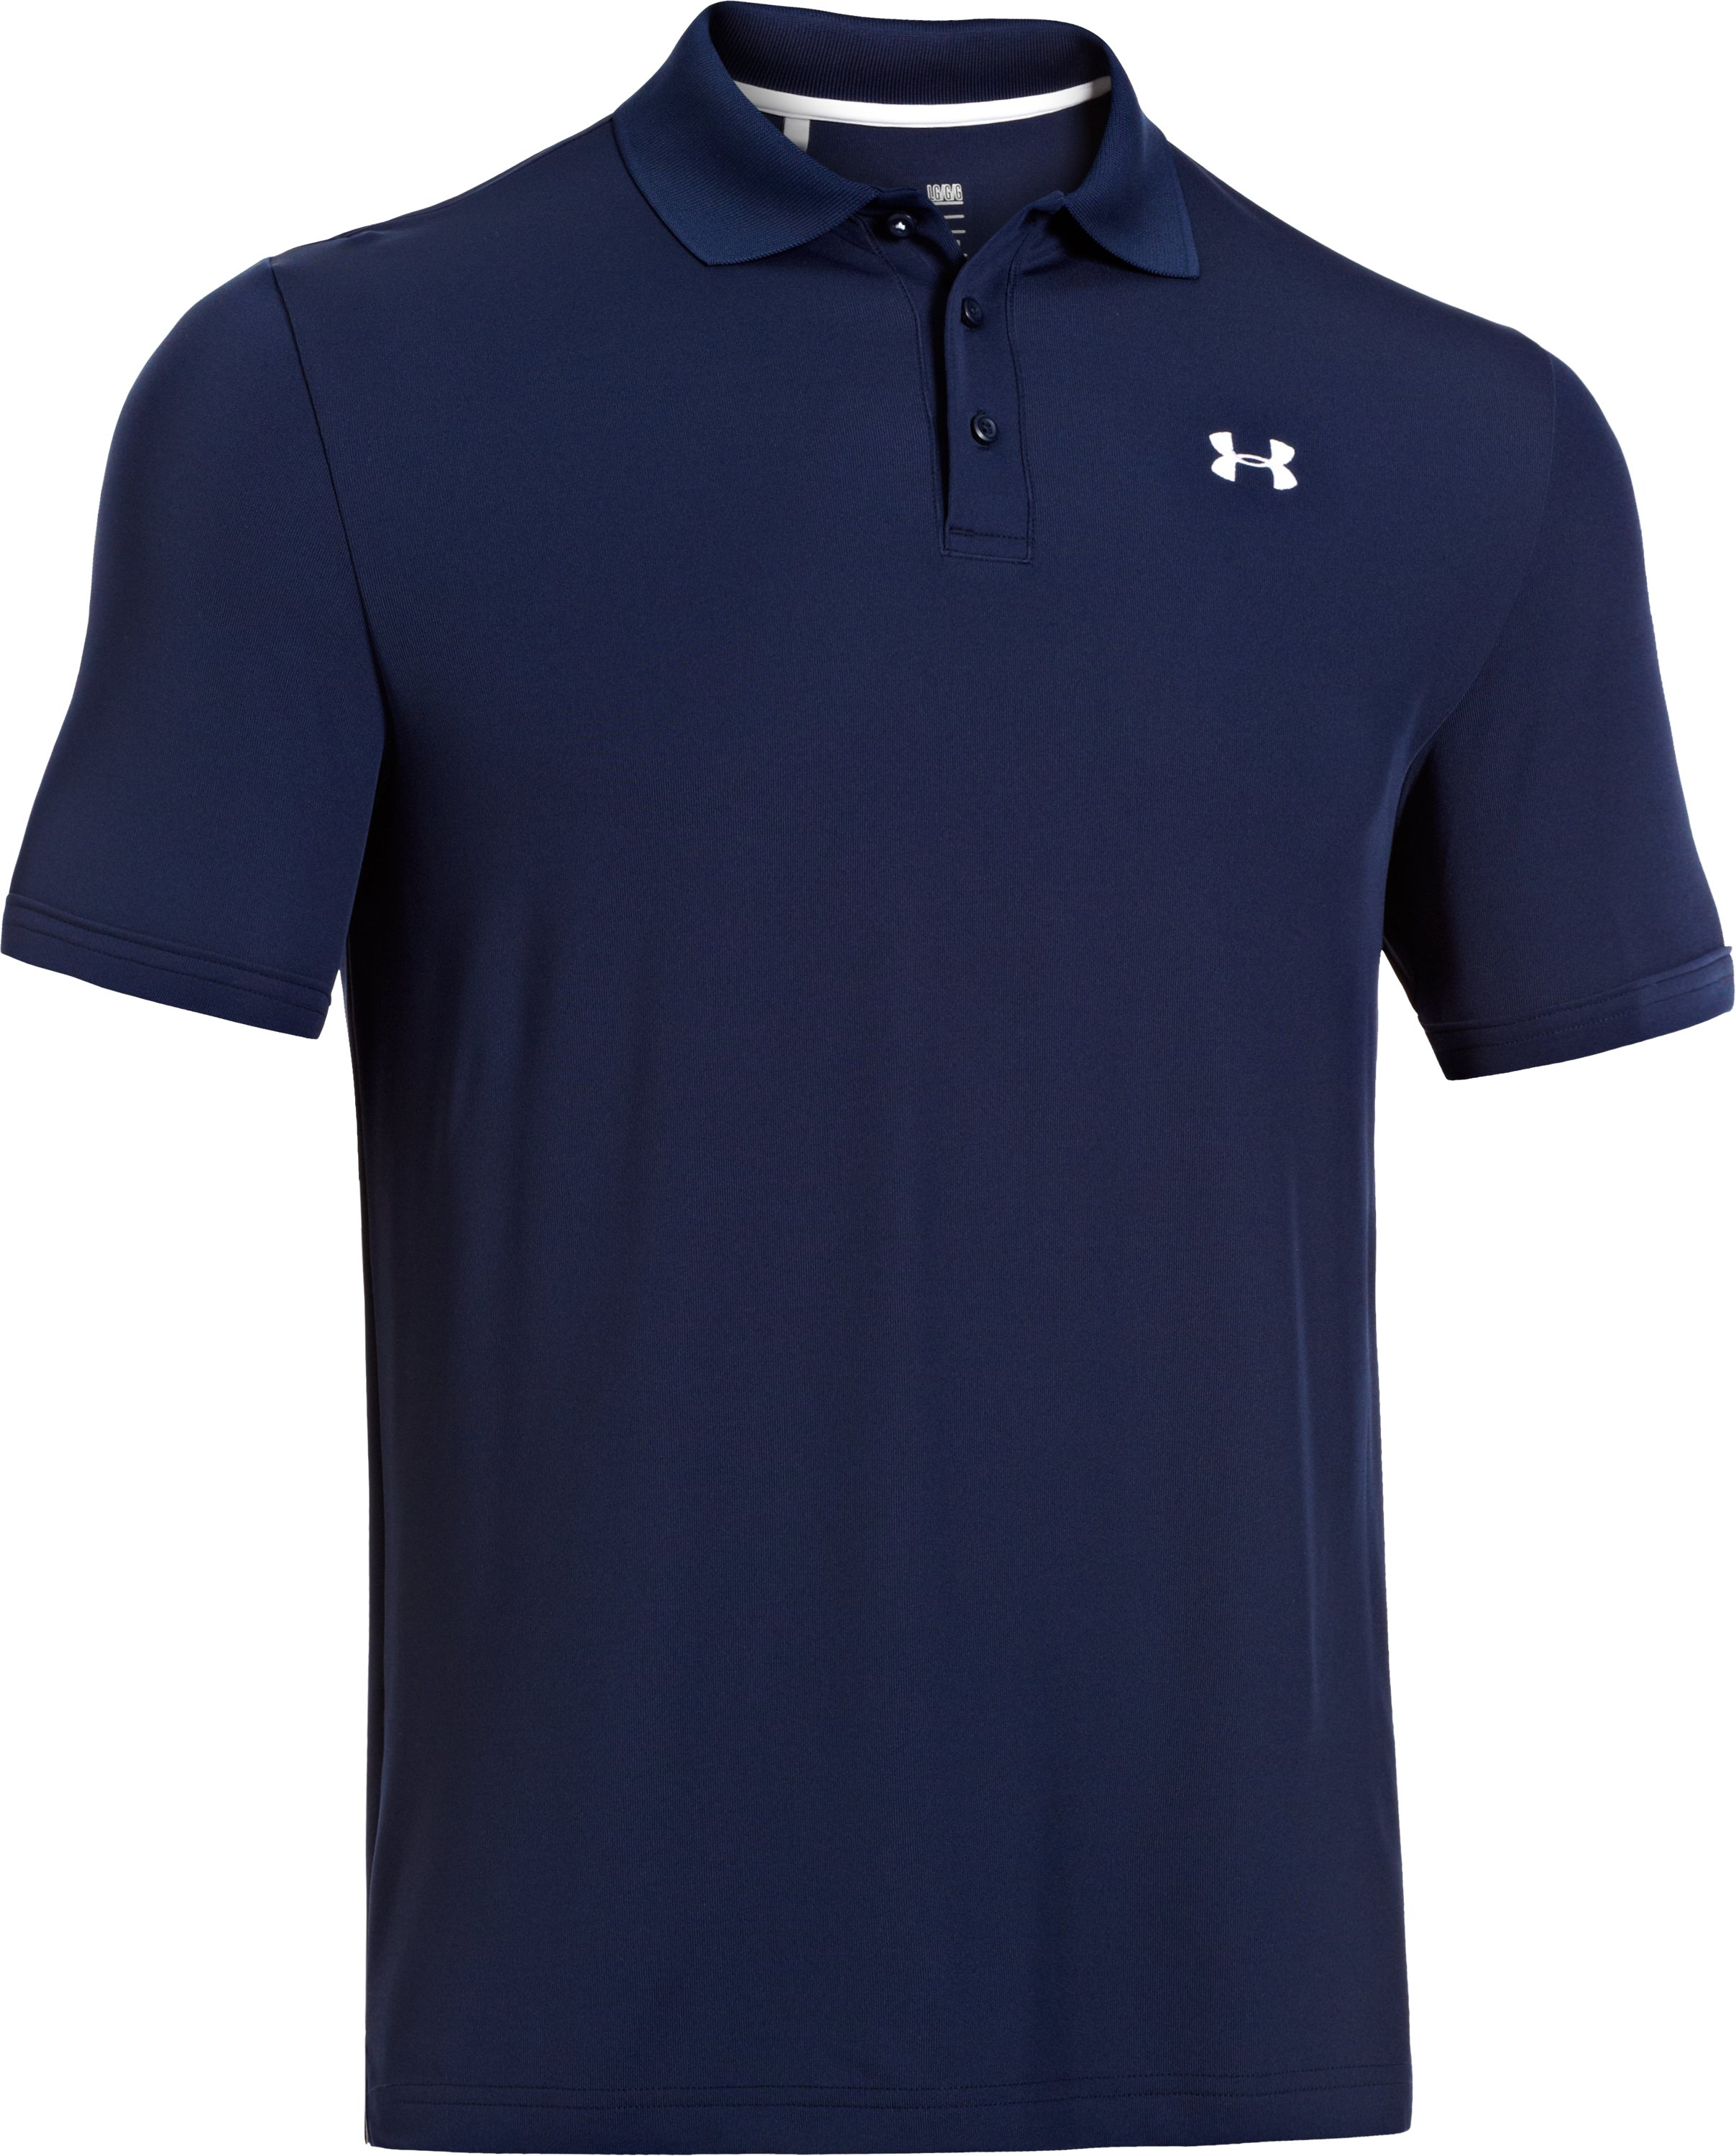 Men's UA Performance Polo, Academy